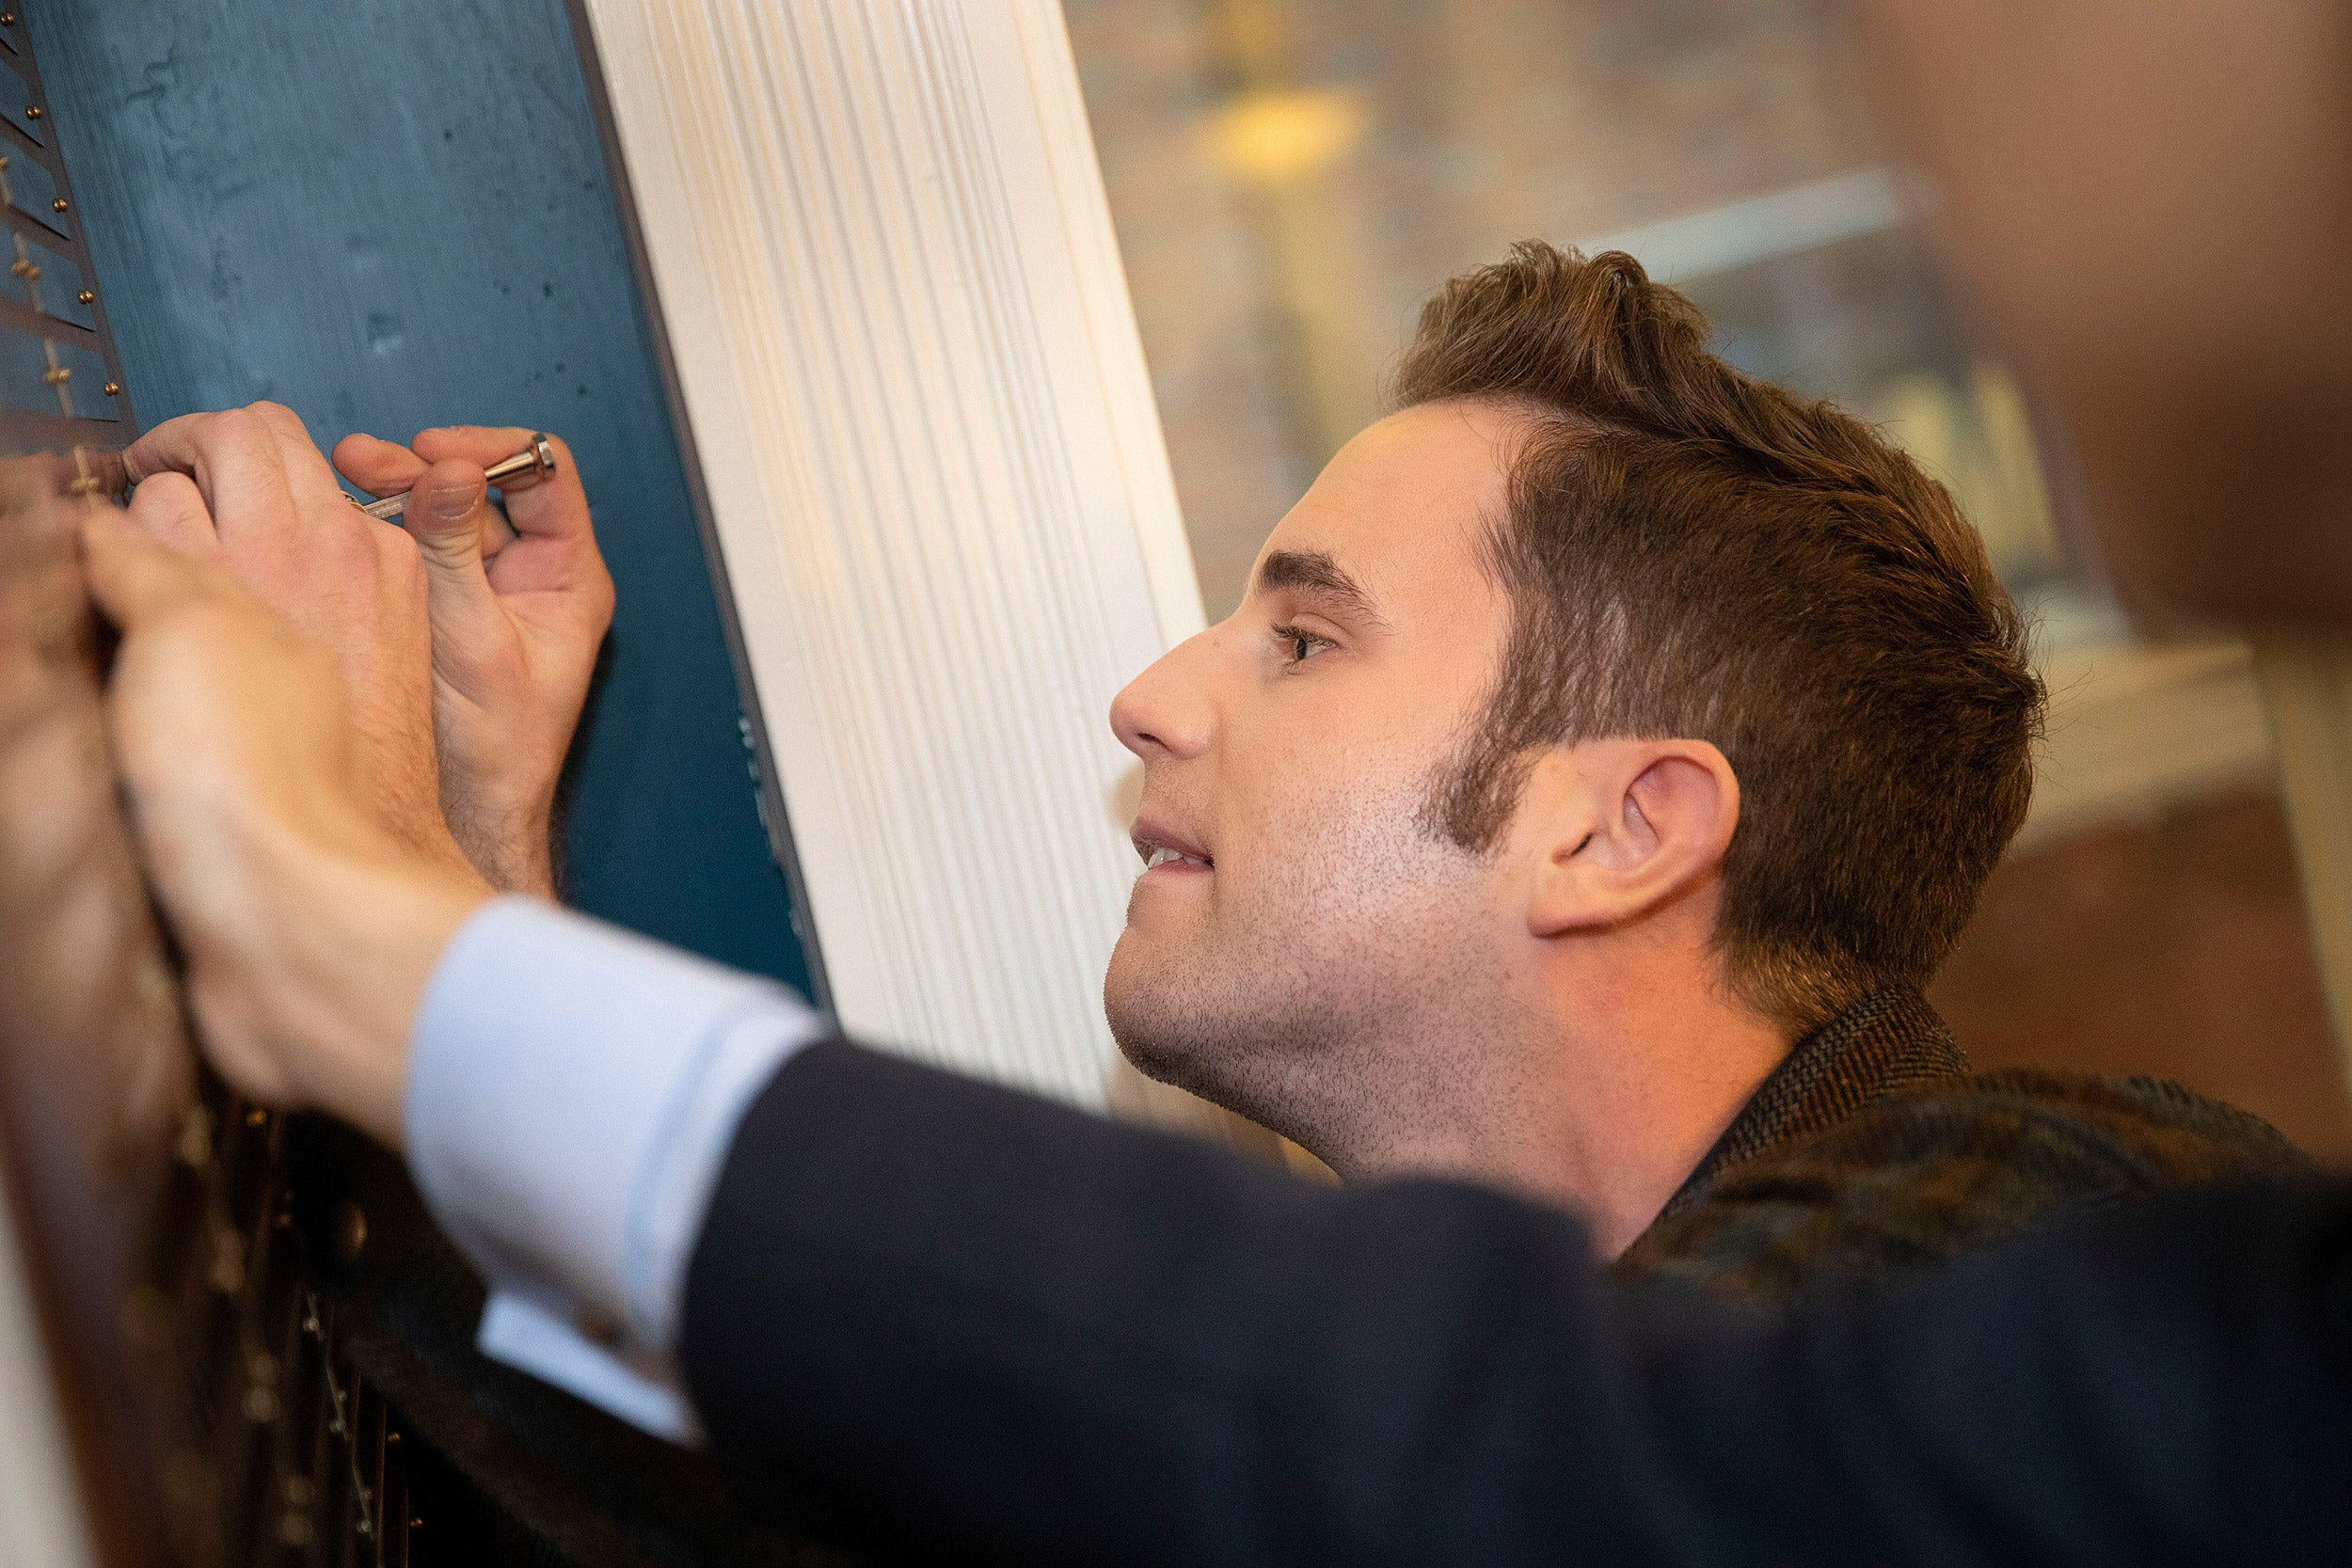 Ben Platt putting his name on the plaque.